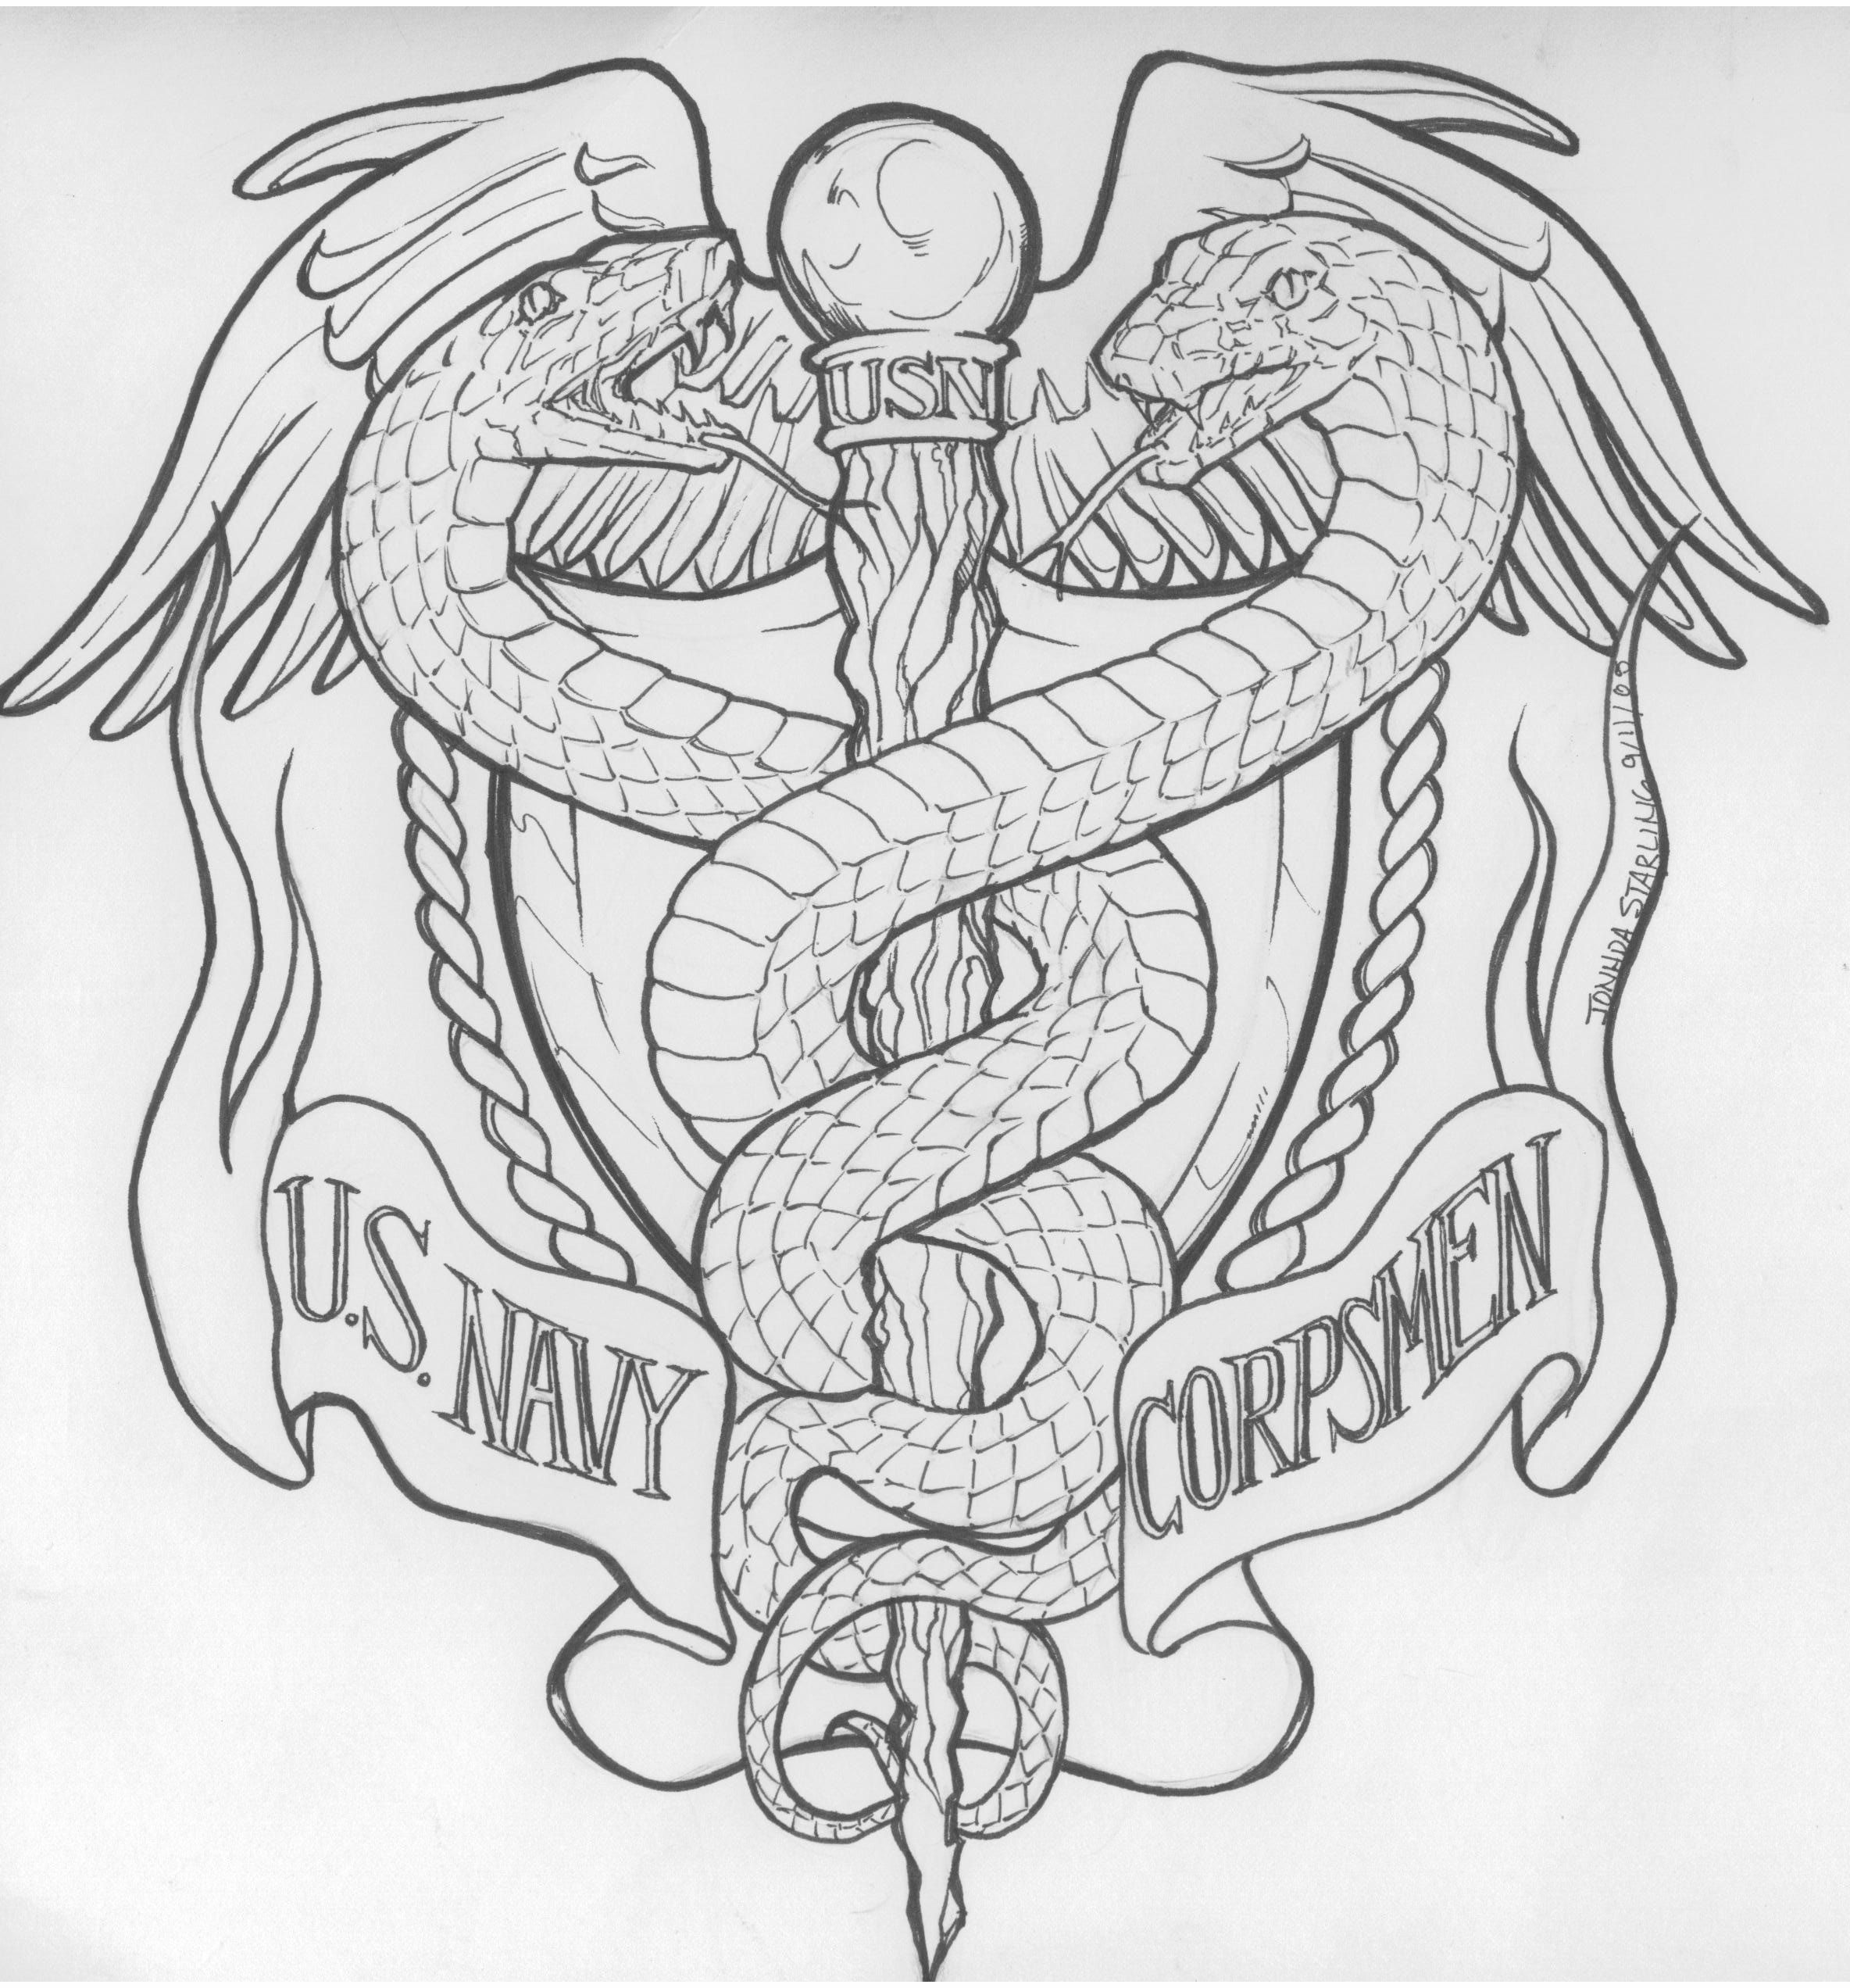 navy corpsman tattoos us navy corps commish request by biomechlizardchick on deviantart bad. Black Bedroom Furniture Sets. Home Design Ideas